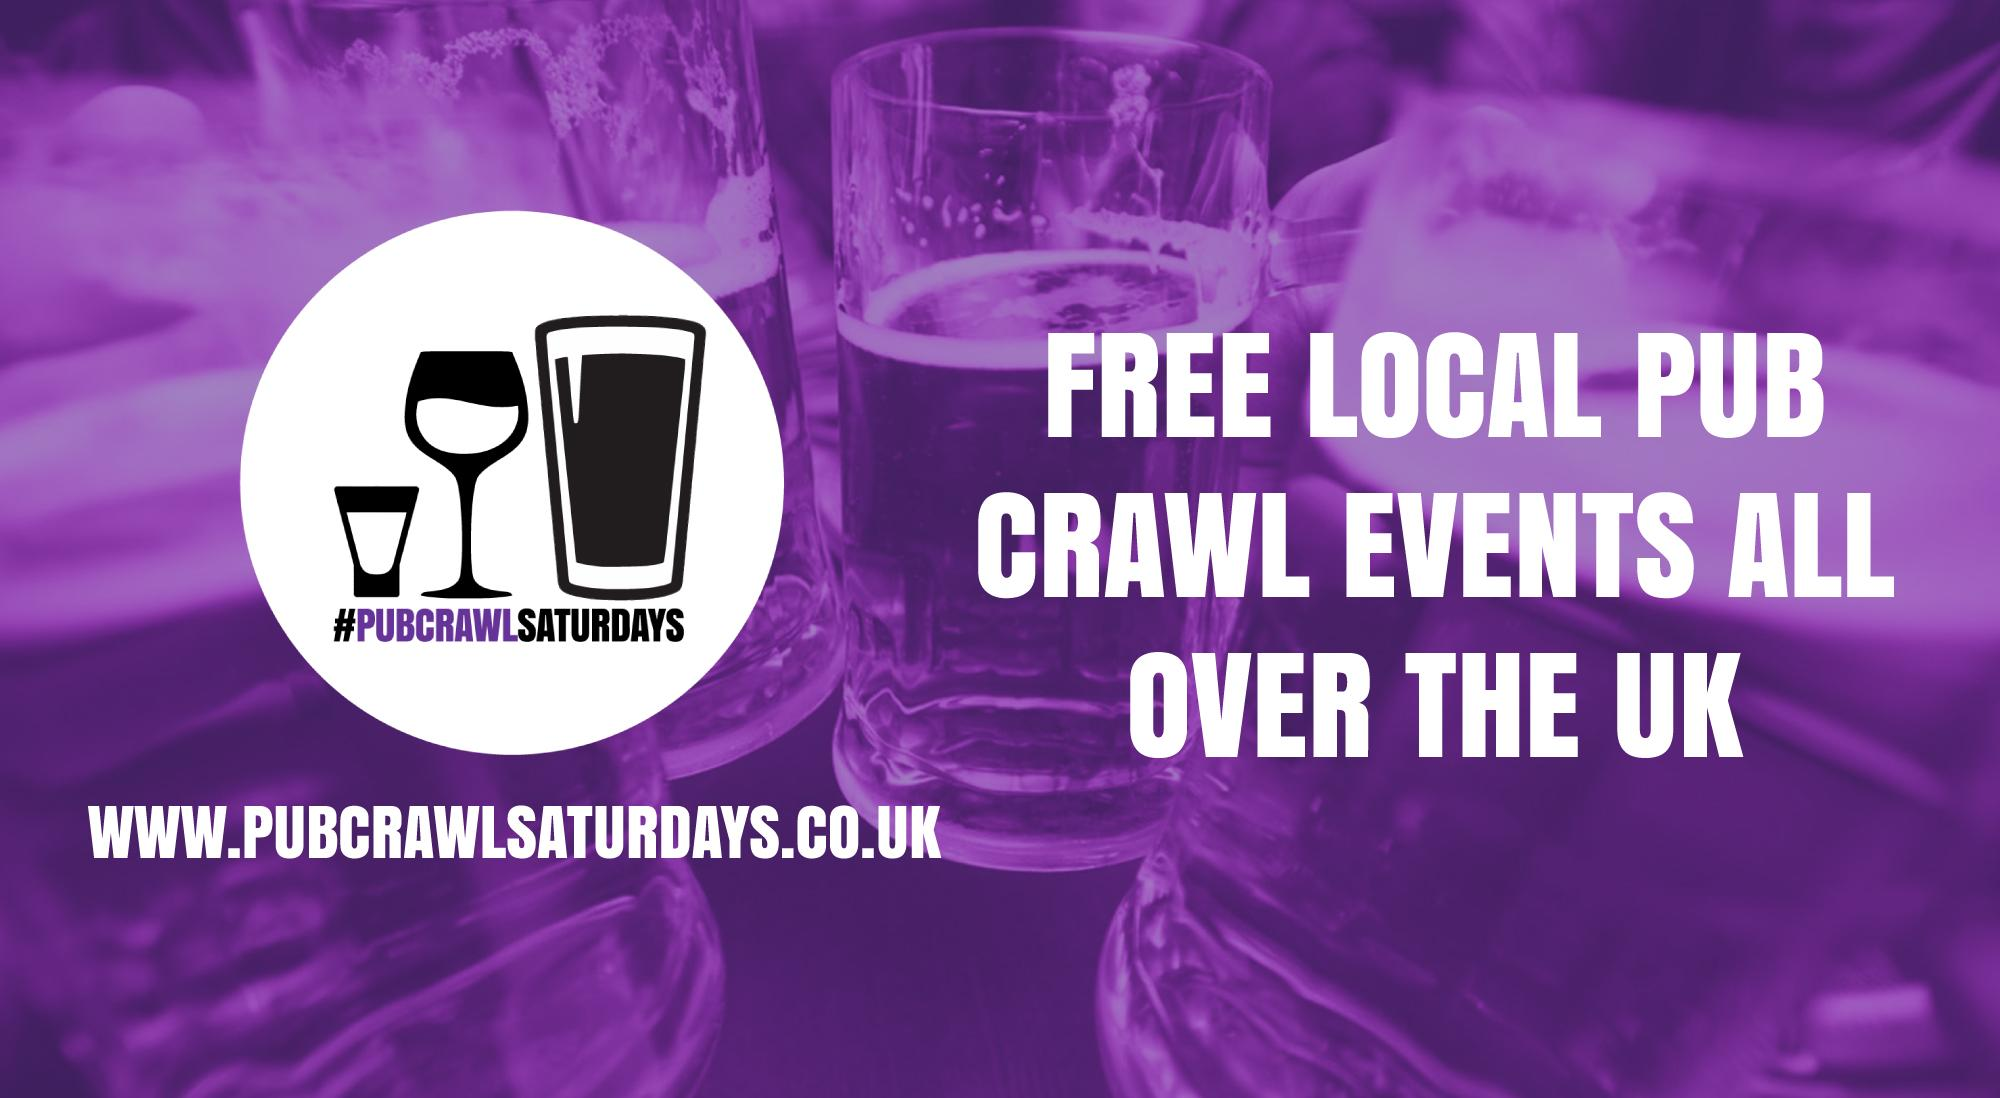 PUB CRAWL SATURDAYS! Free weekly pub crawl event in London